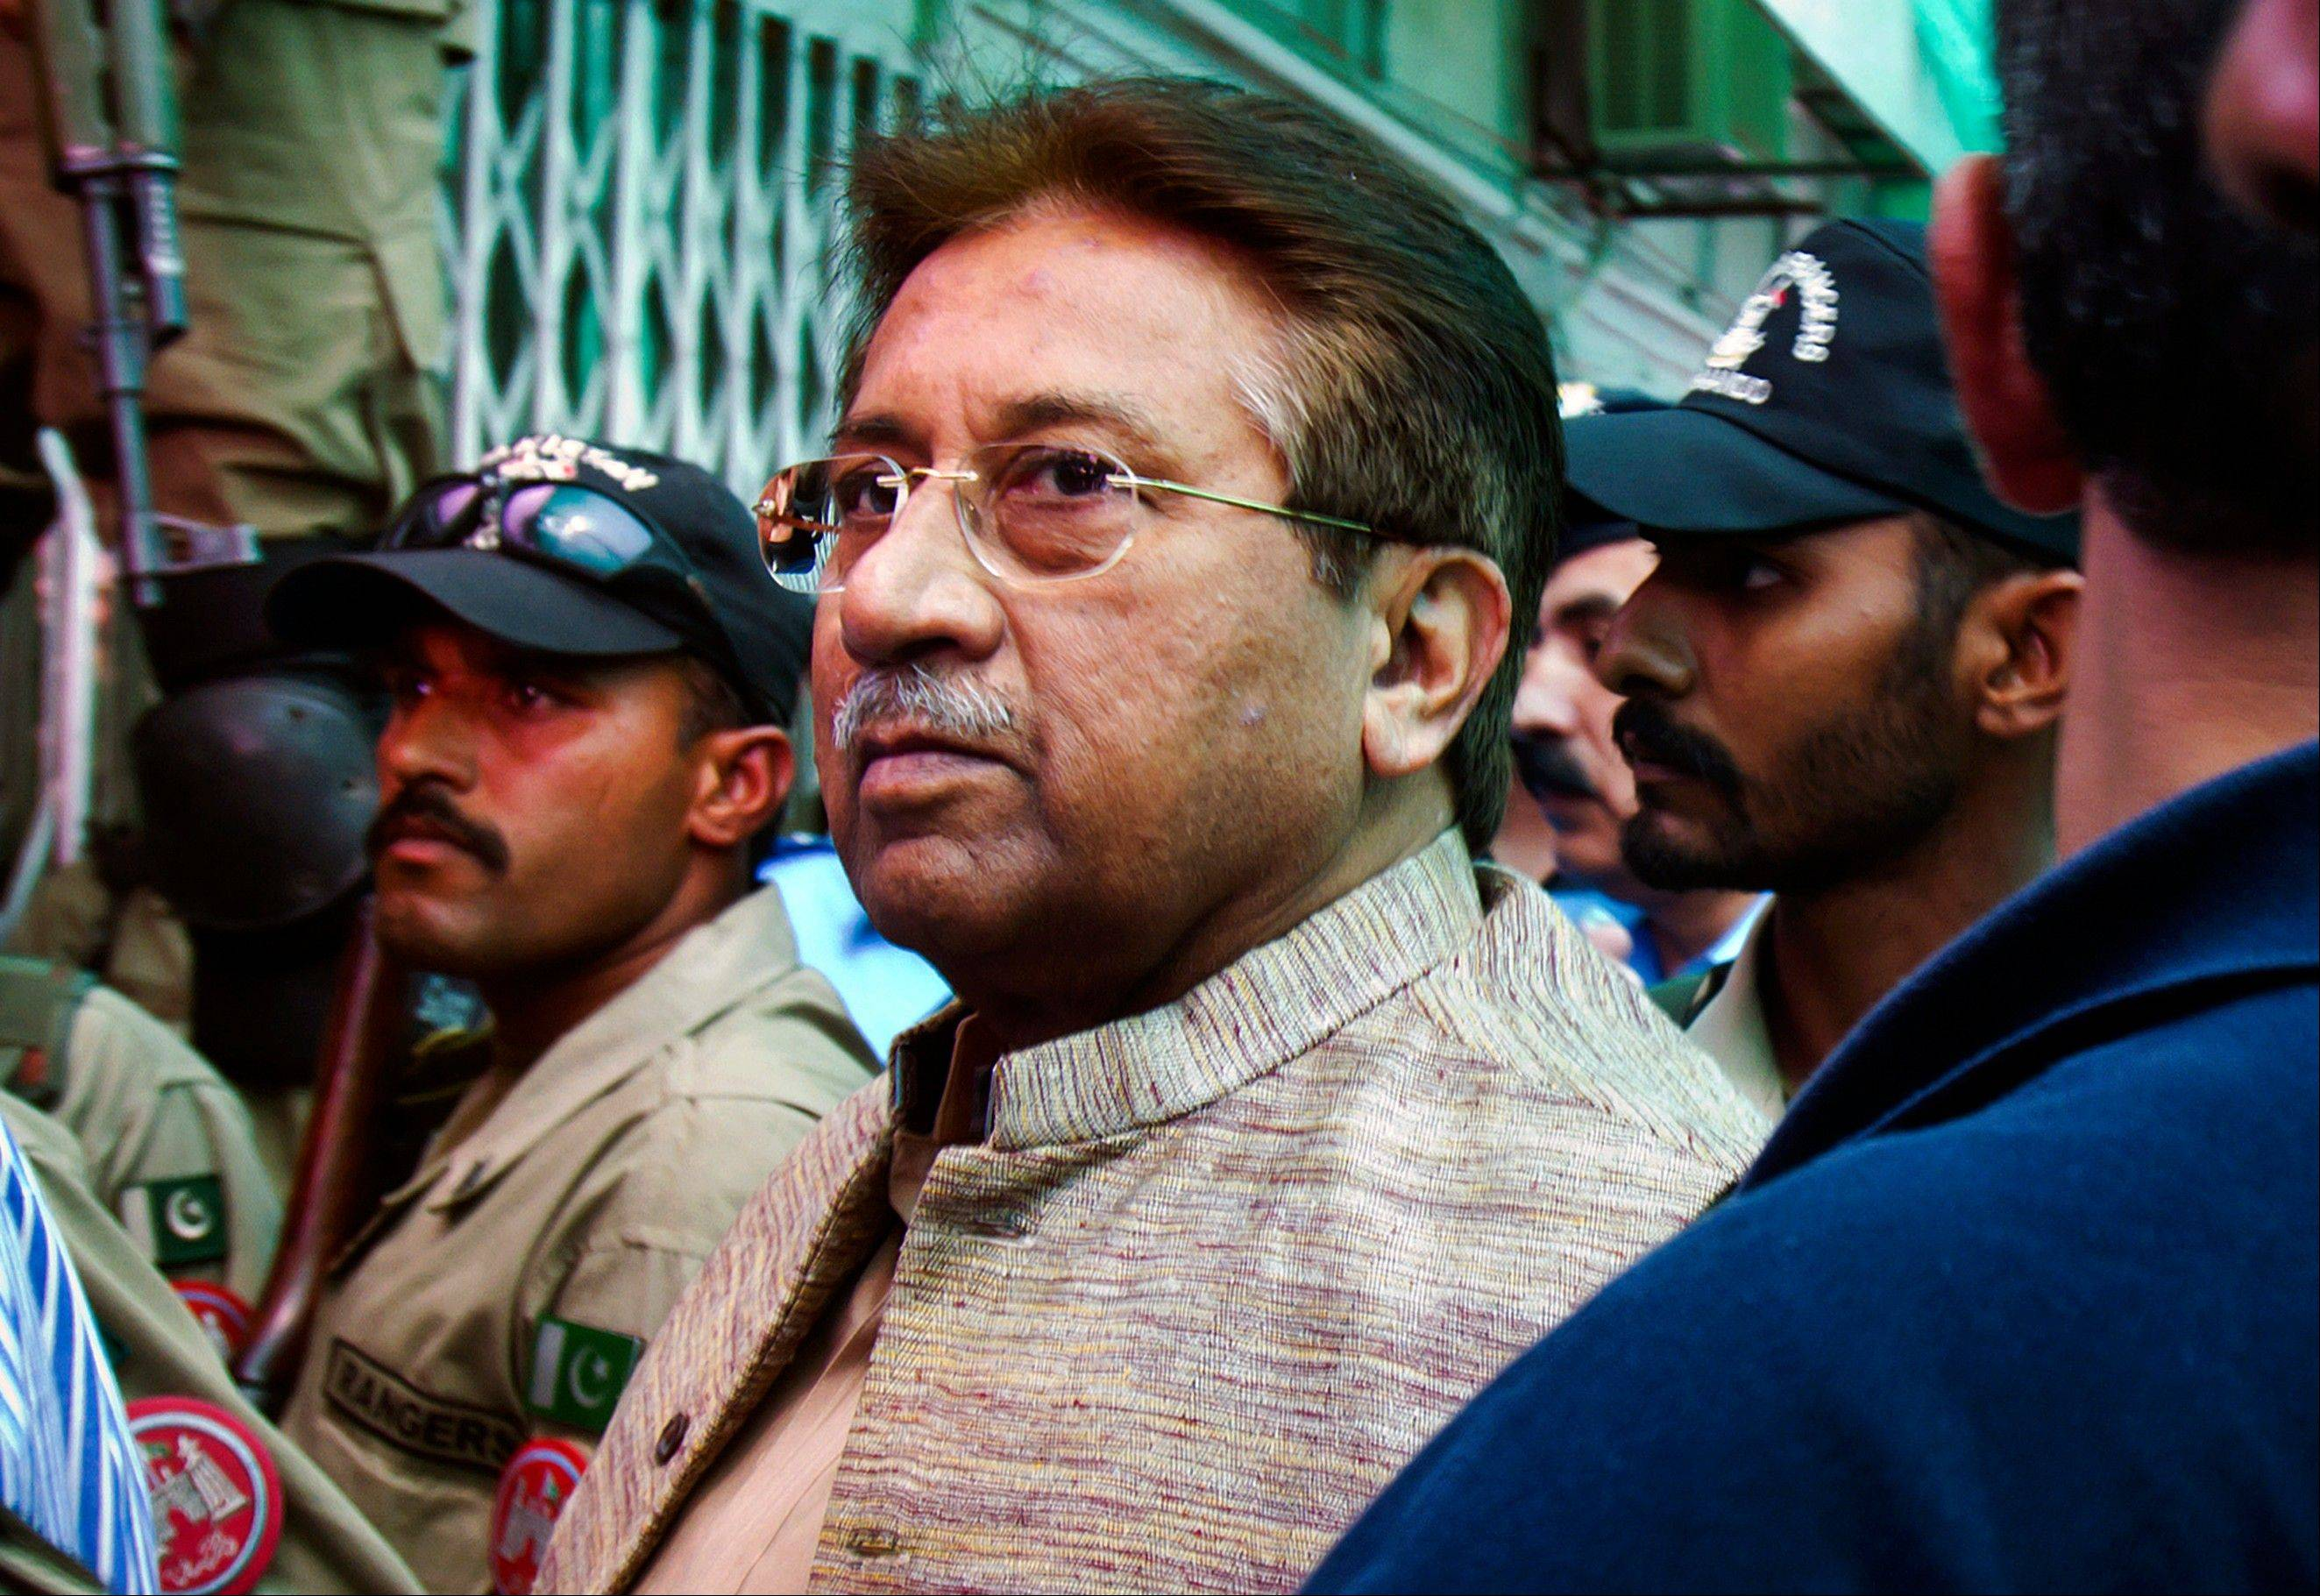 A Pakistani court Tuesday indicted former President and military ruler Pervez Musharraf on murder charges in connection with the 2007 assassination of iconic Pakistani Prime Minister Benazir Bhutto, deepening the fall of a once-powerful figure who returned to the country this year in an effort to take part in elections.